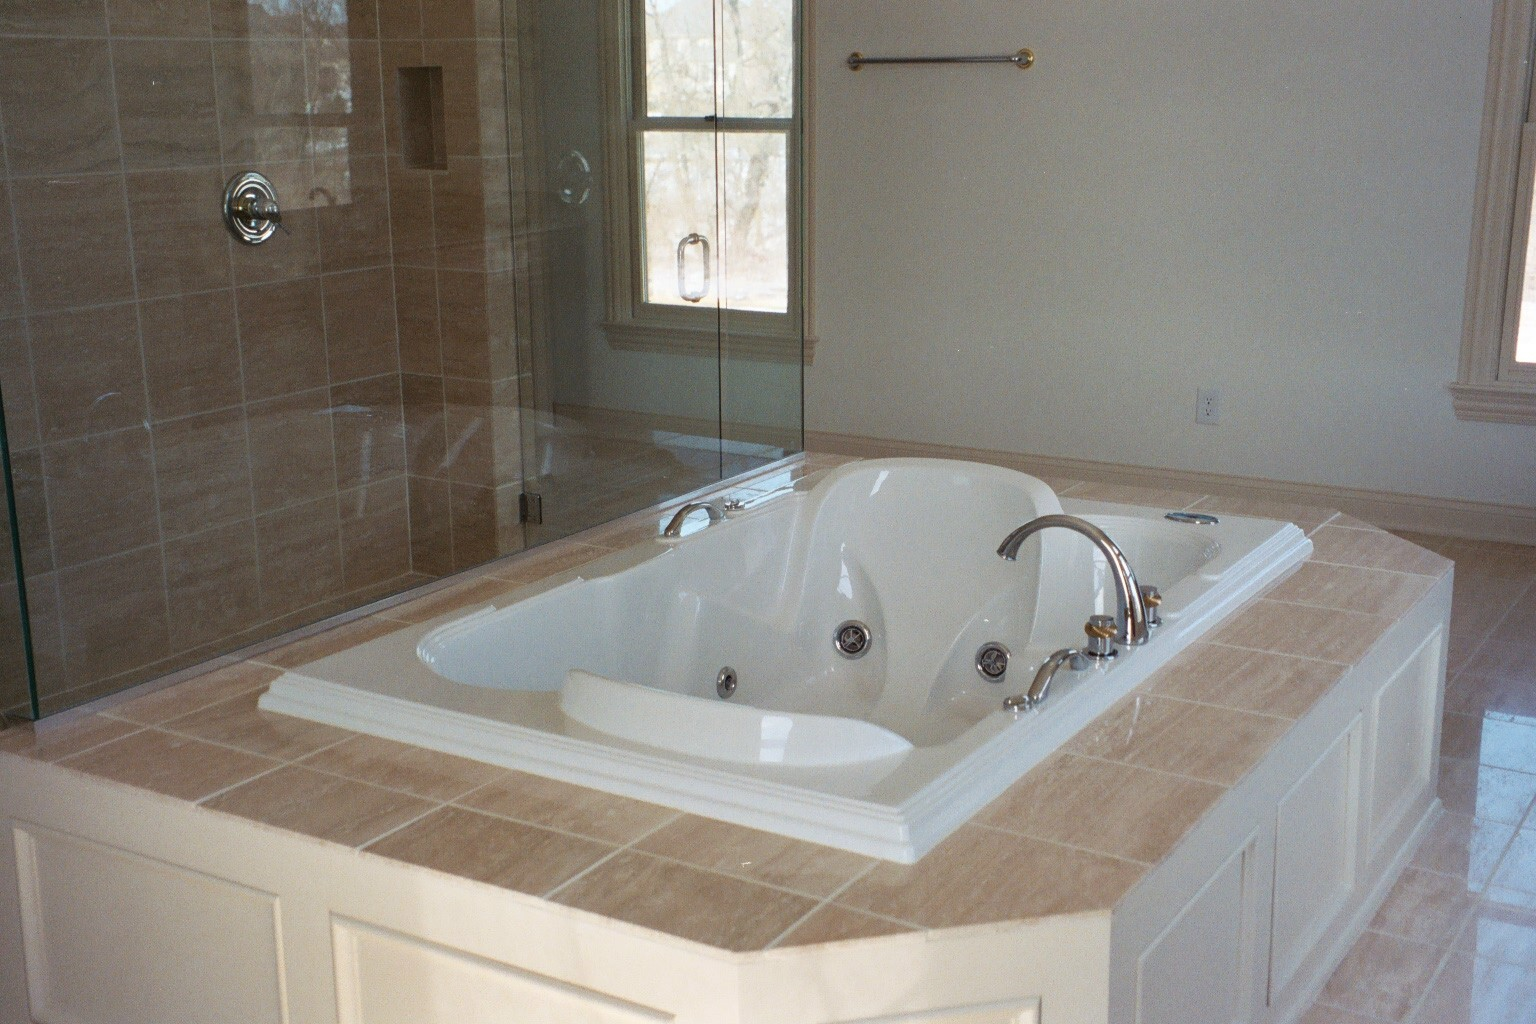 Bathroom design with jacuzzi tub home decorating ideasbathroom interior design - Bathroom designs with jacuzzi tub ...